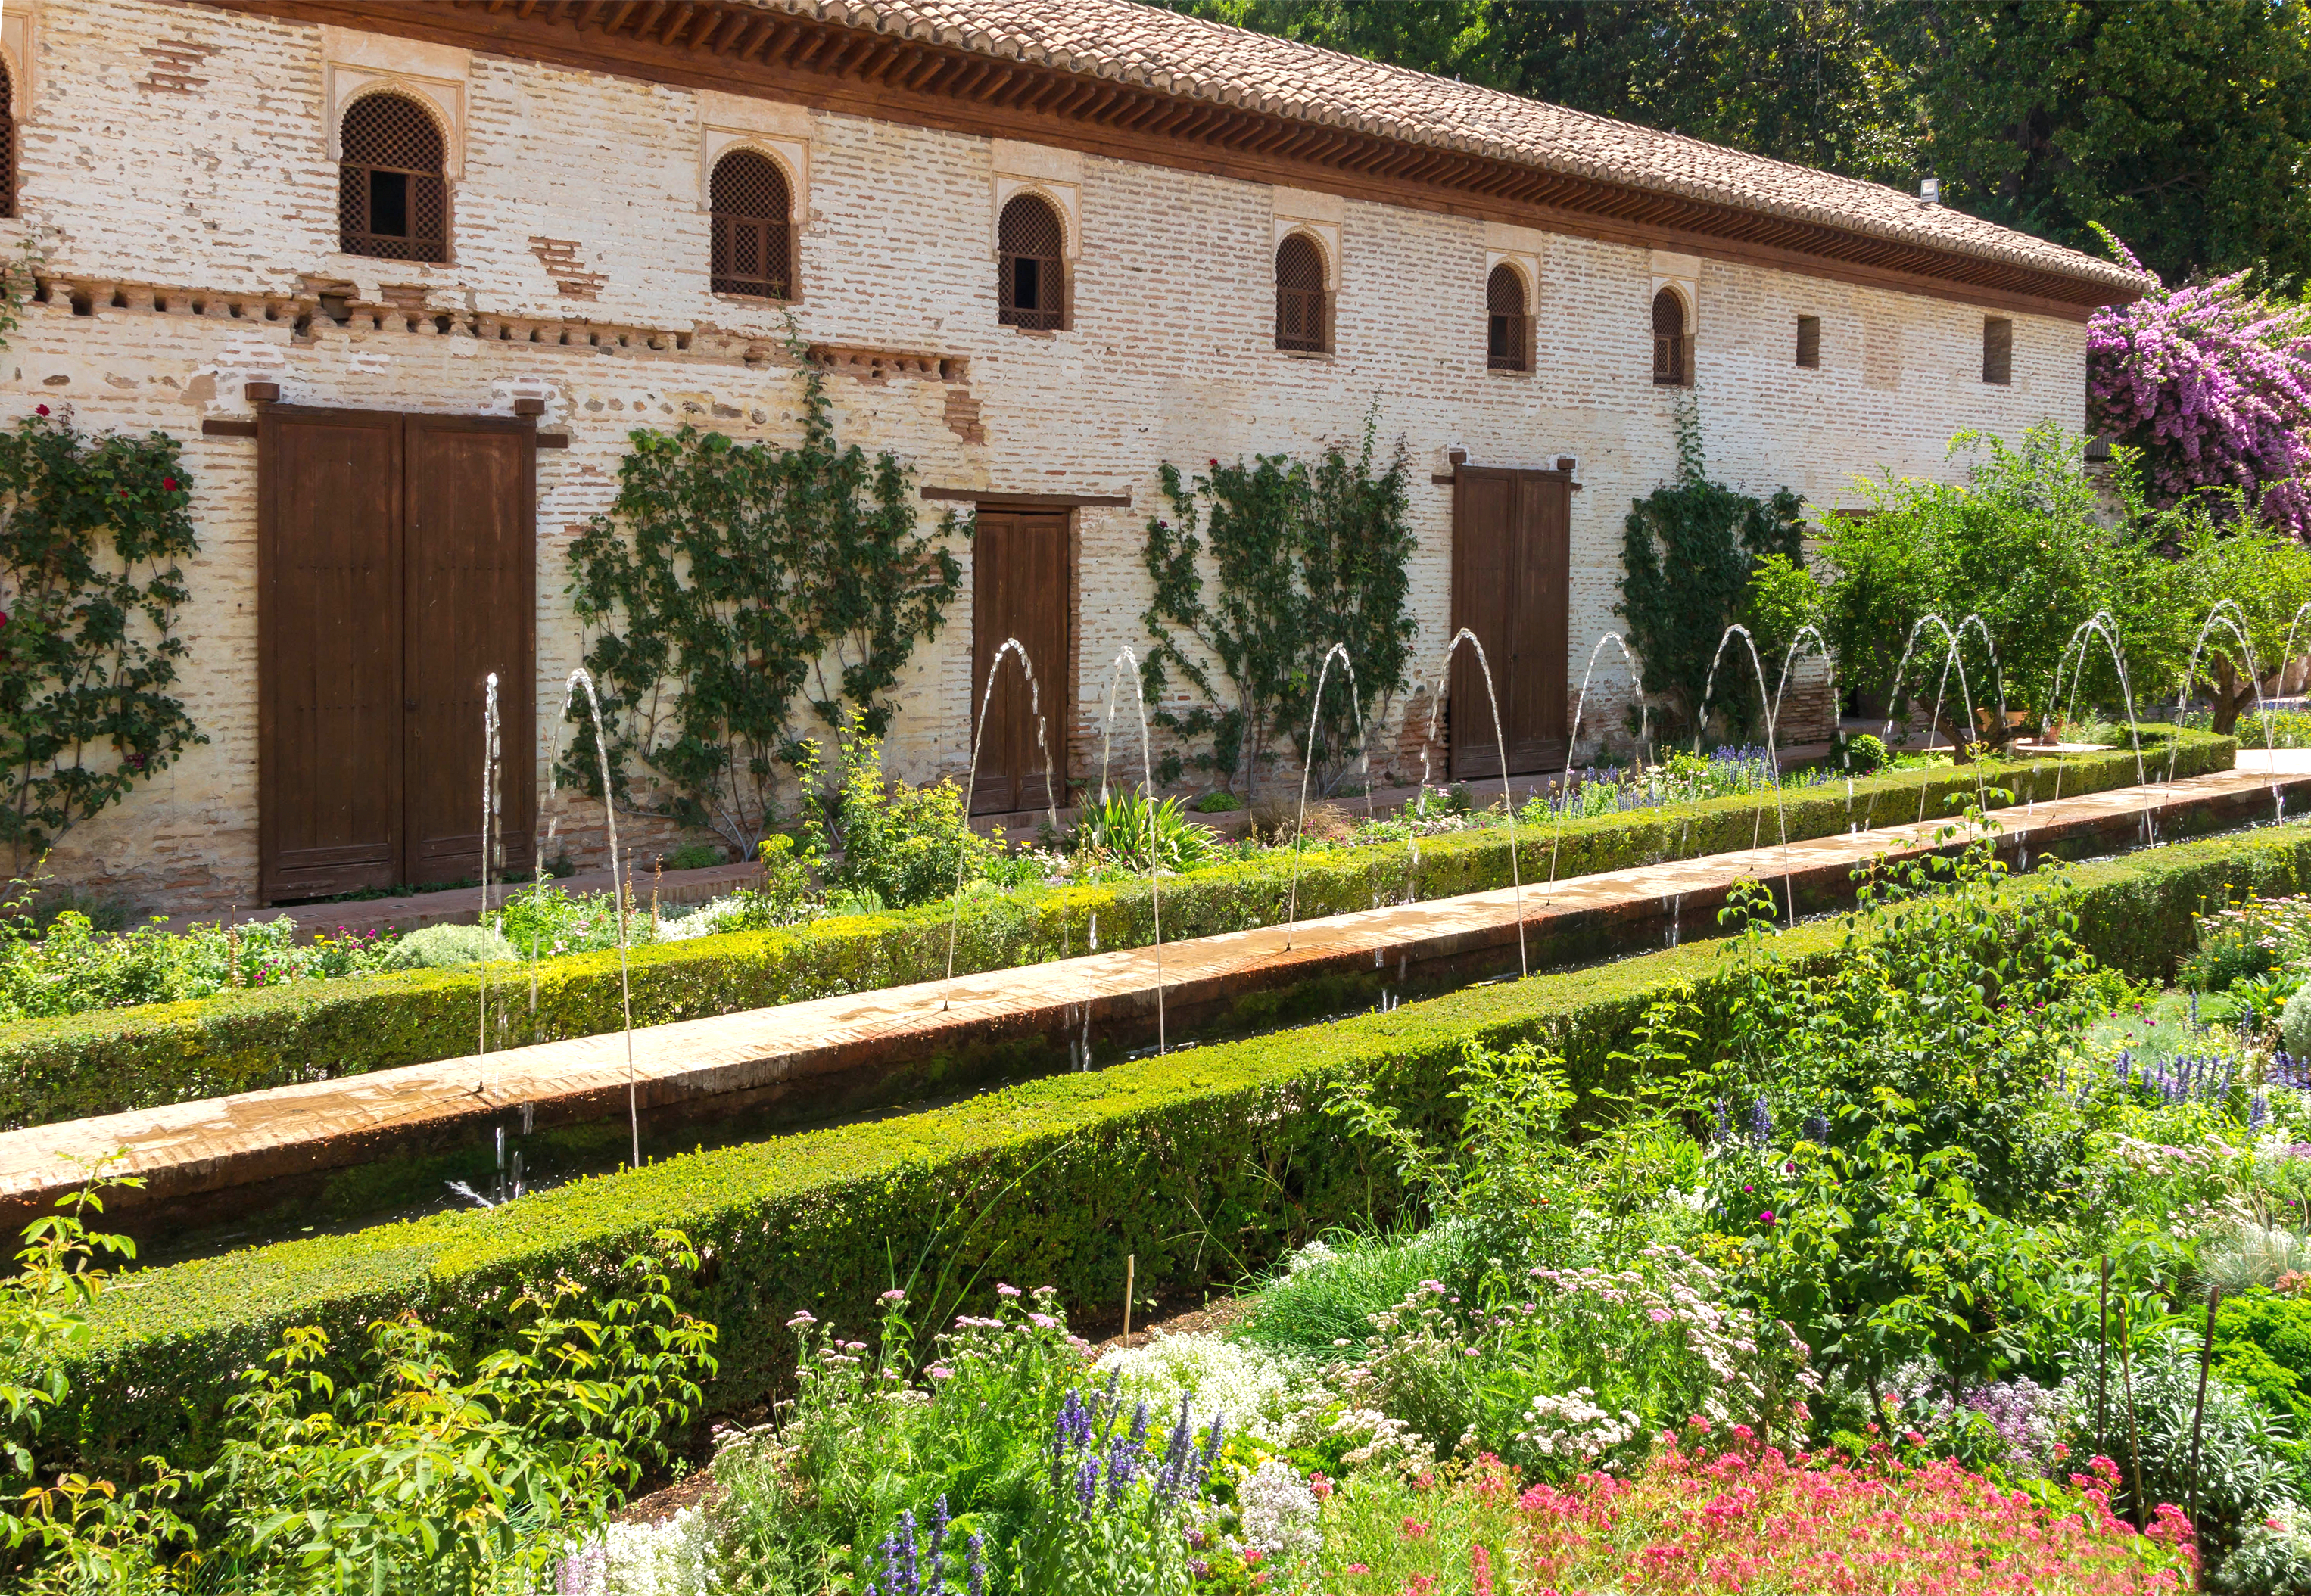 File:Patio de la Acequia fountains Generalife Granada Spain.jpg ...